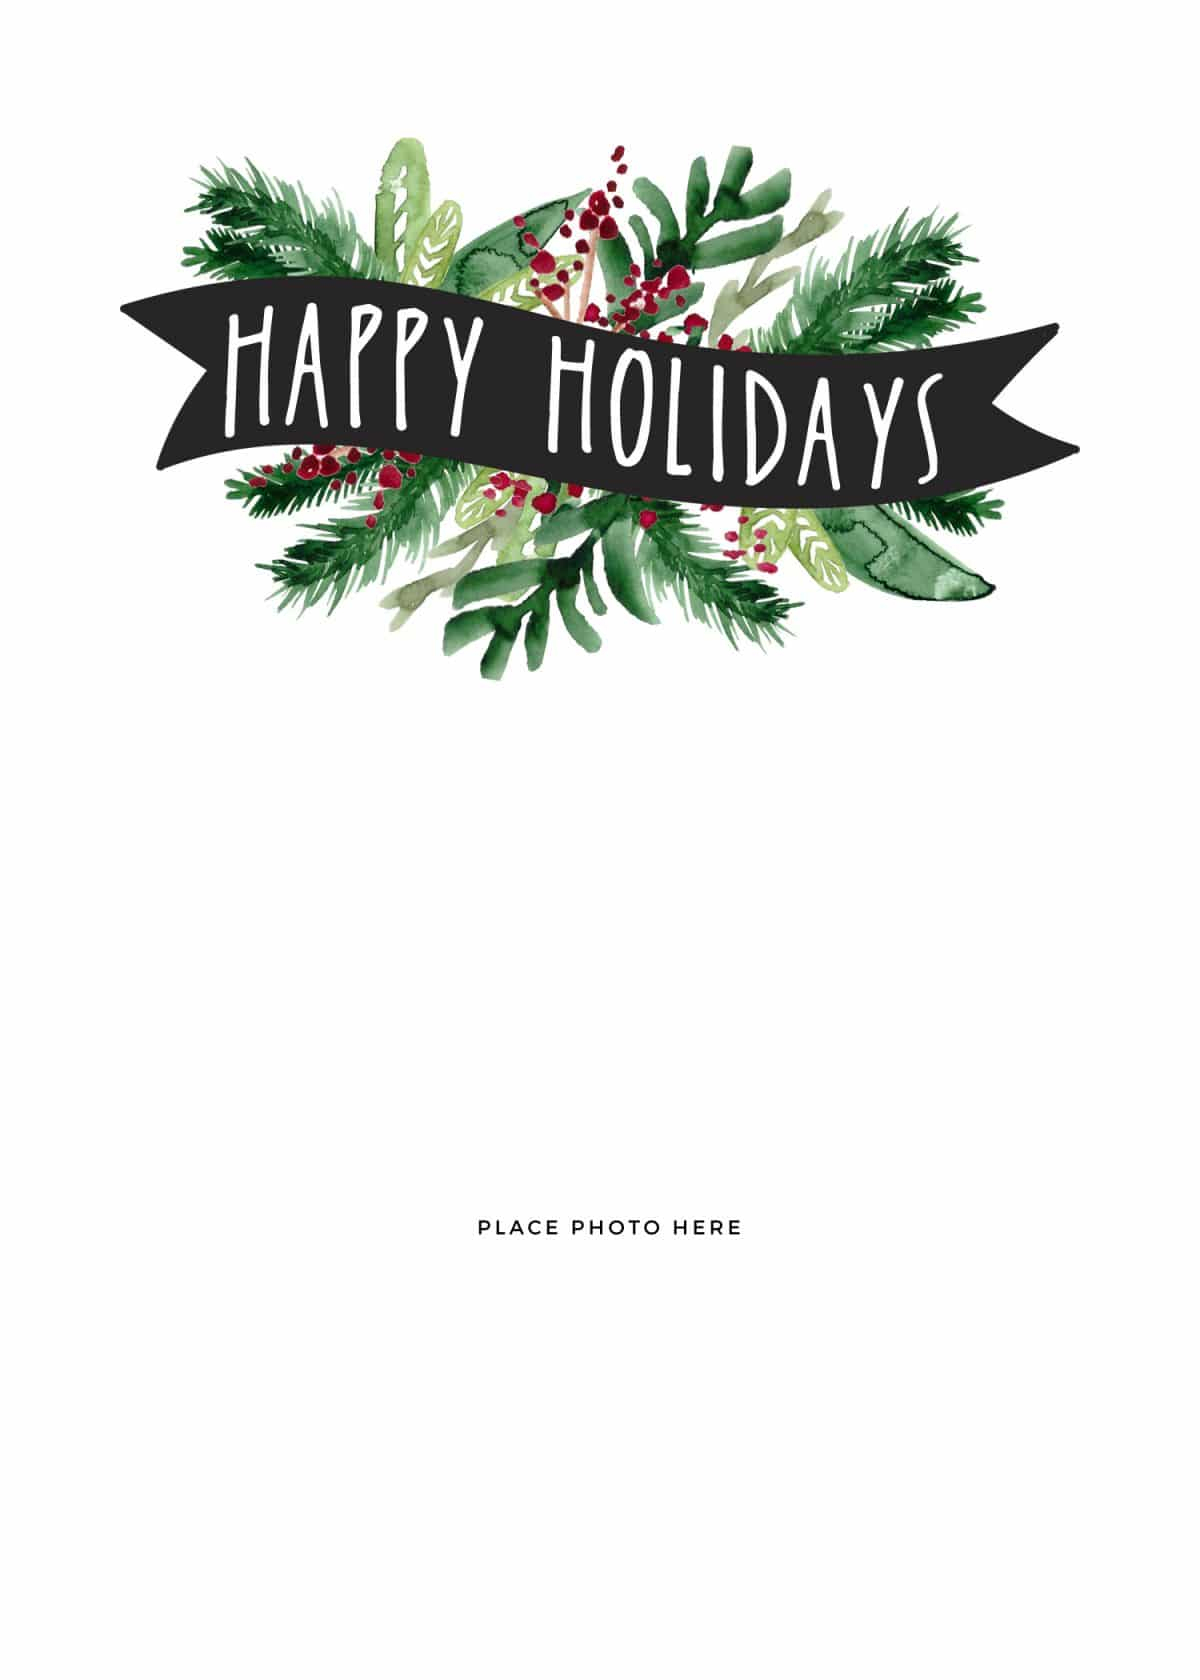 Make Your Own Photo Christmas Cards (For Free!) - Somewhat Simple - Free Online Printable Christmas Cards